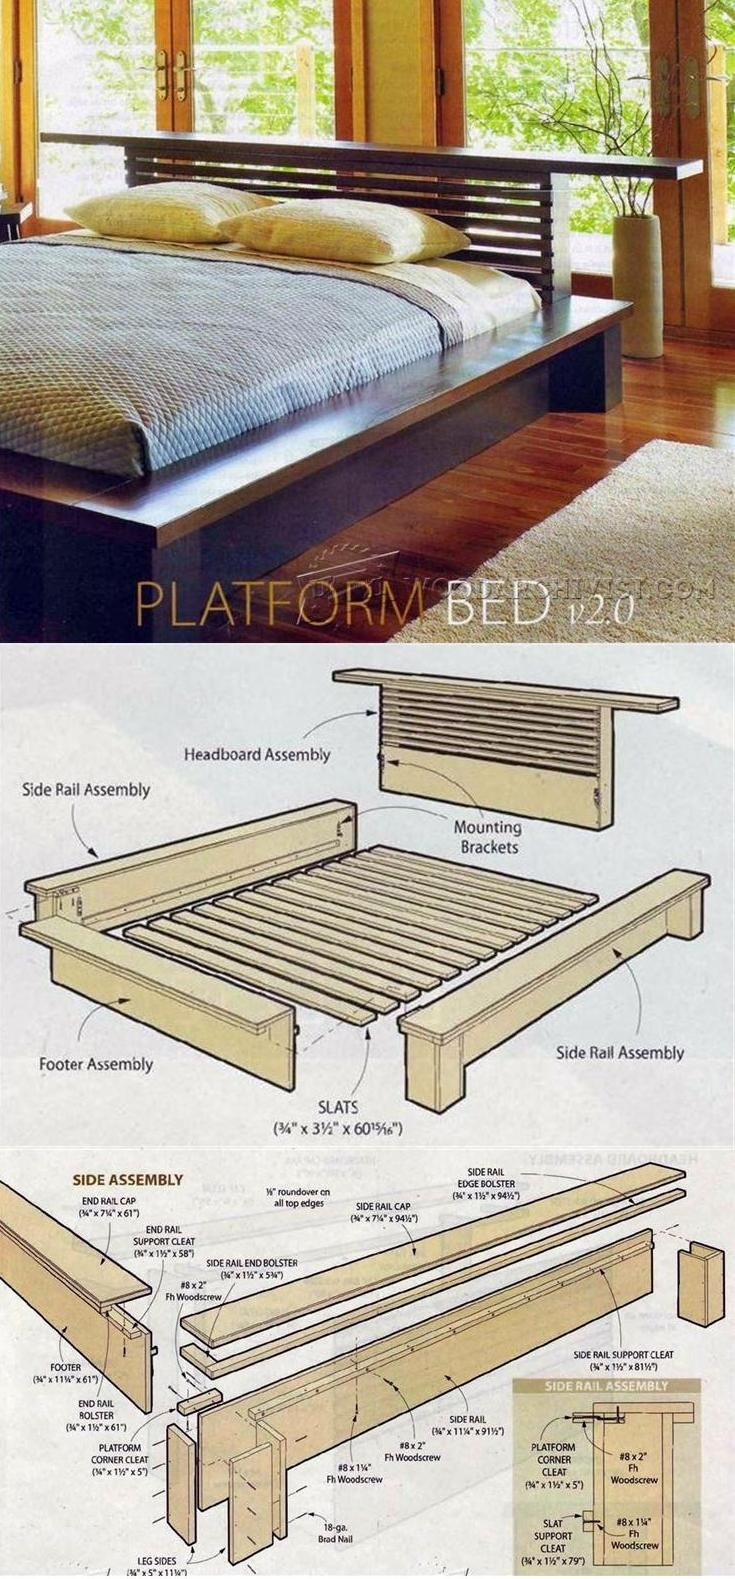 Platform Bed Plans - Furniture Plans and Projects | WoodArchivist.com